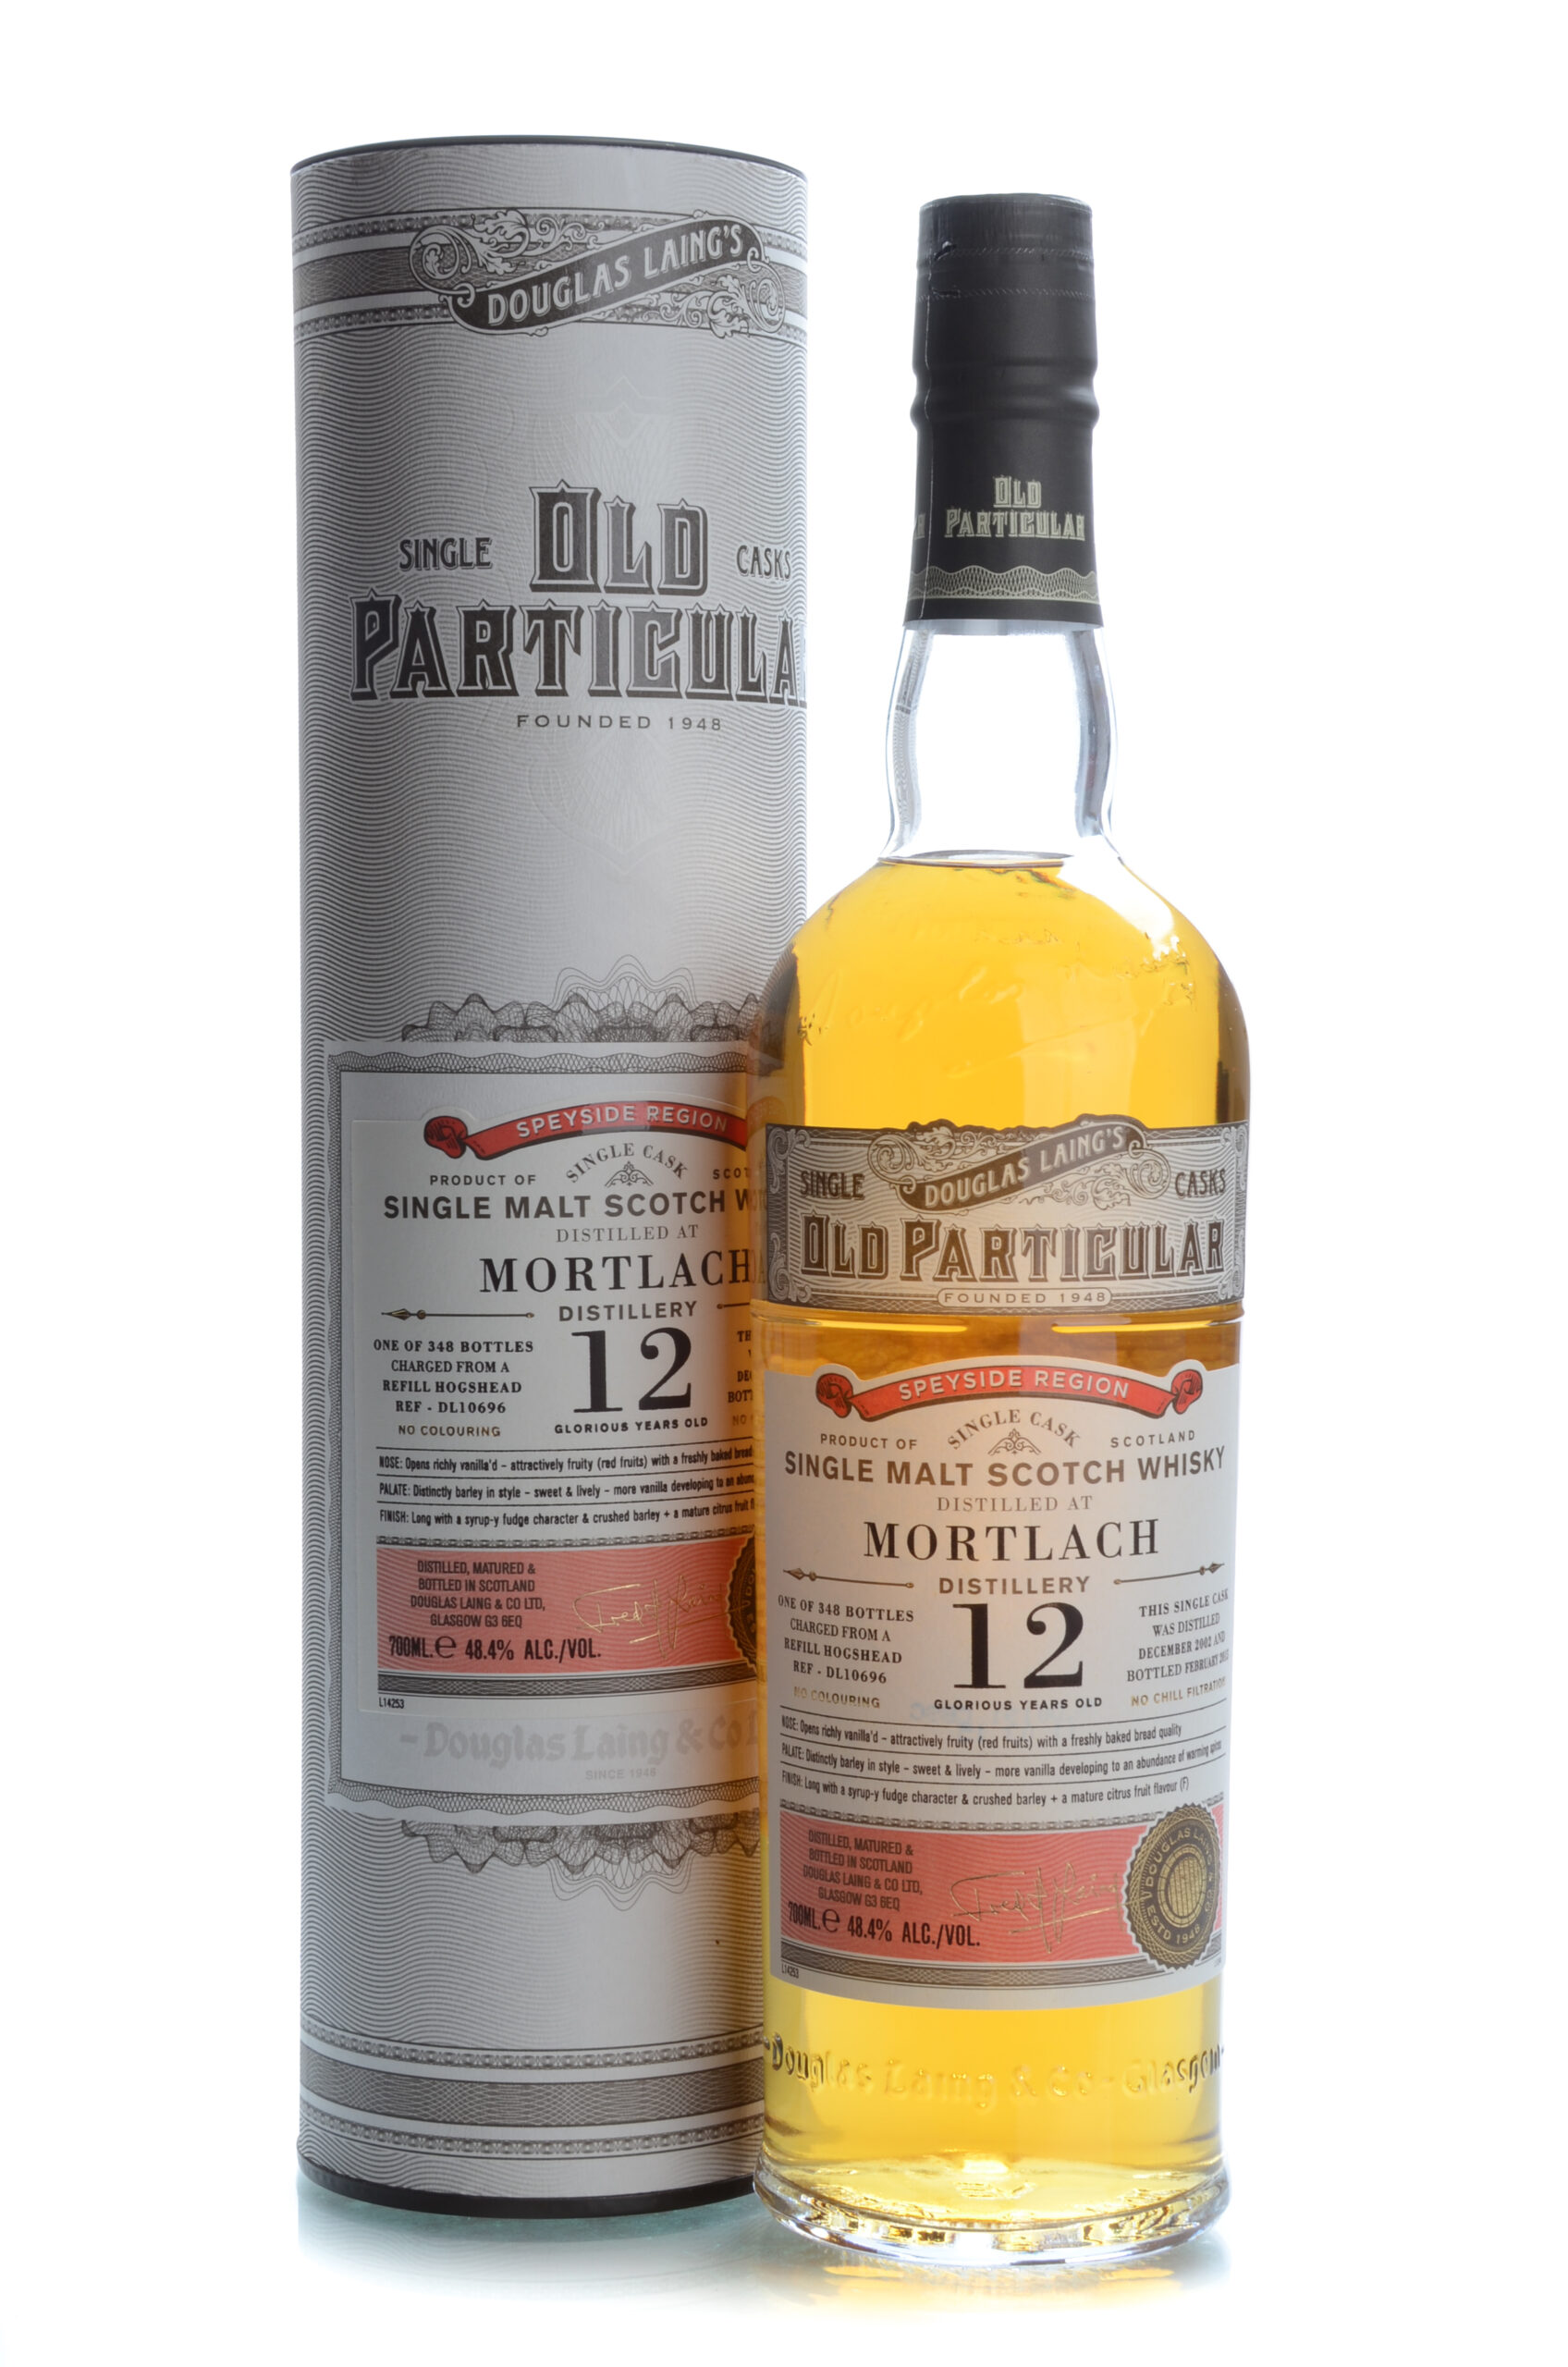 Old Particular Mortlach 12 years